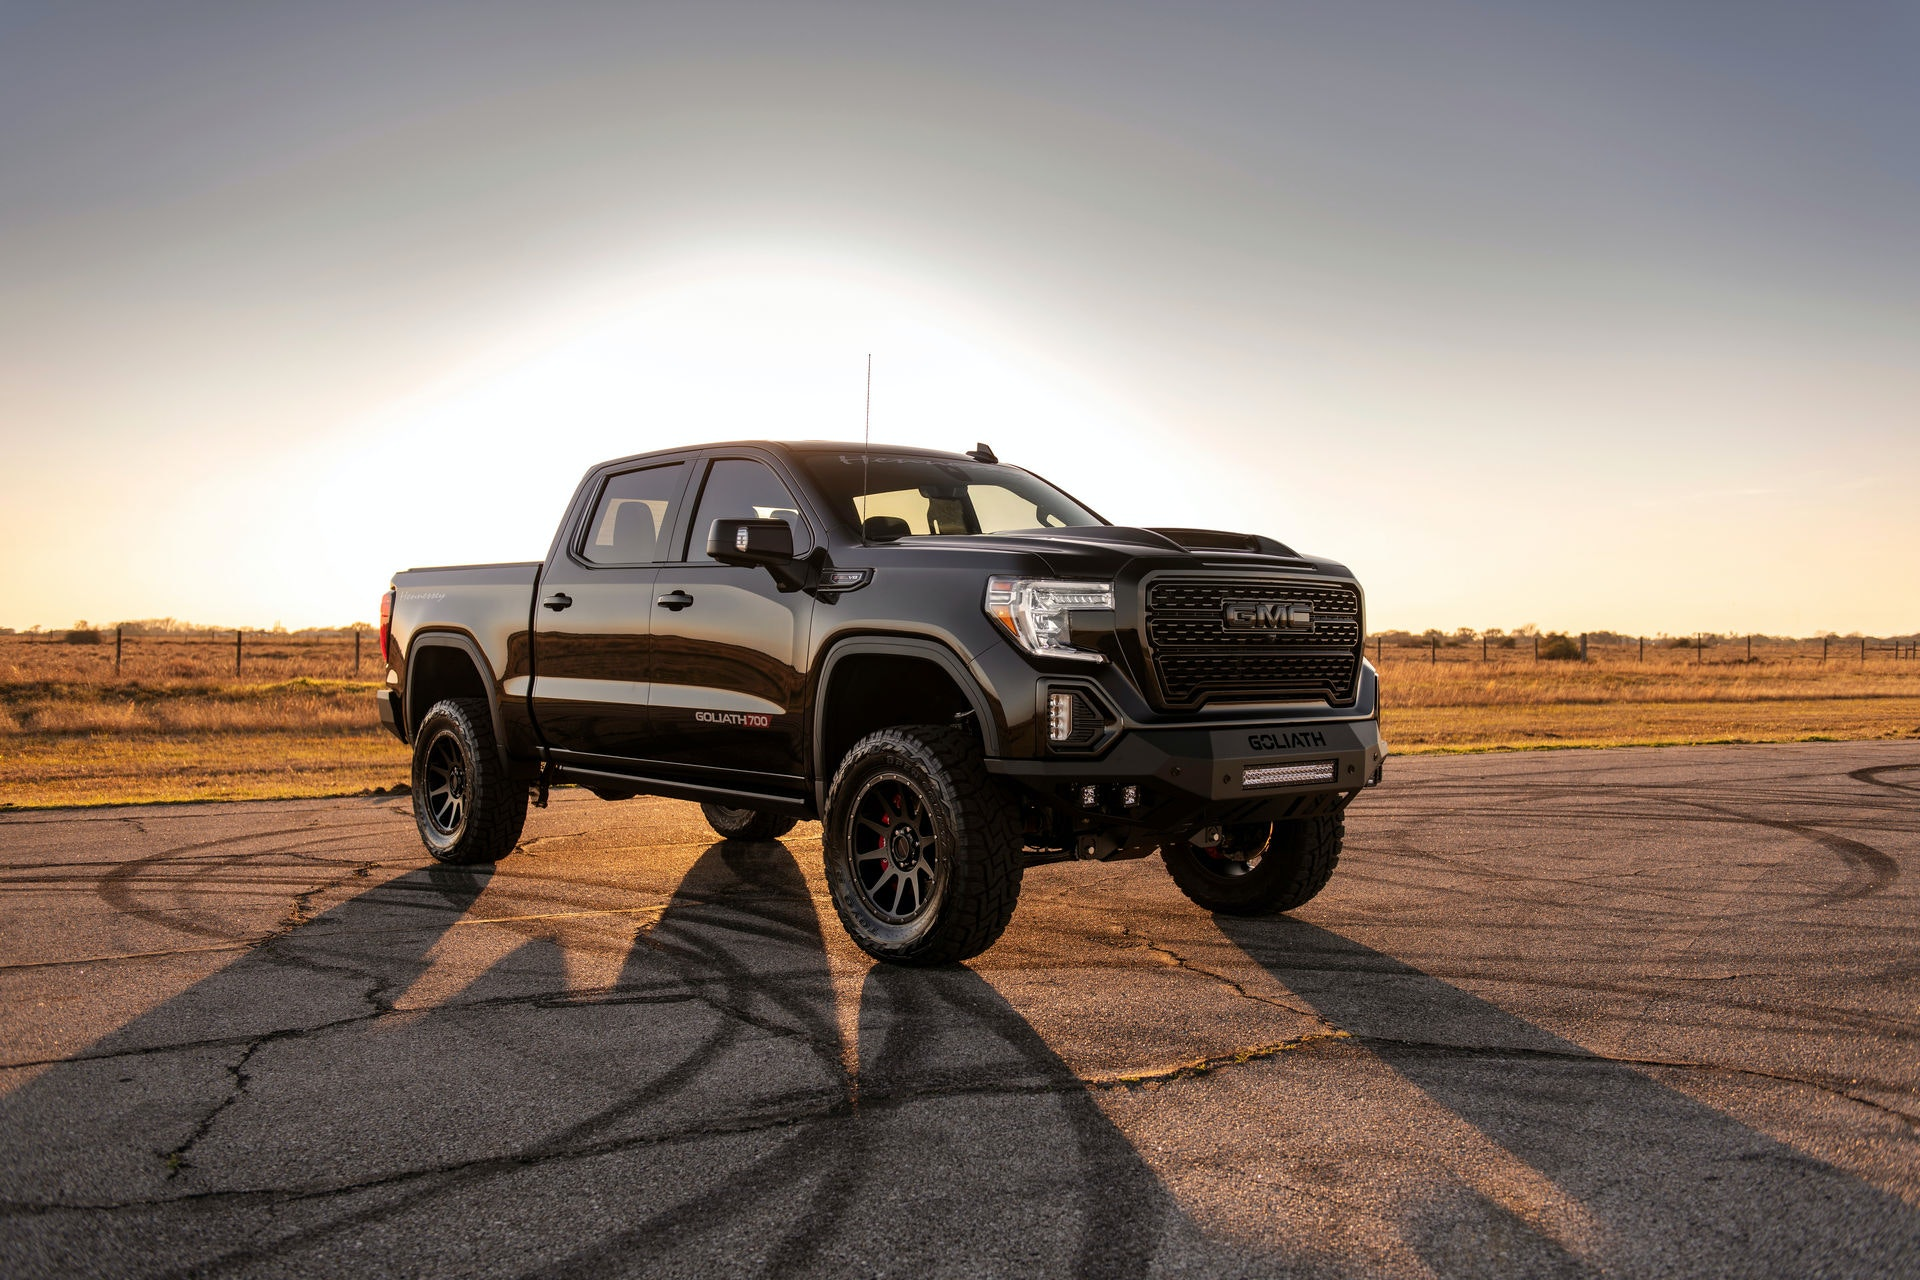 Following the reveal of the insane Goliath 700 Supercharged truck based on the GMC Sierra platform several months ago, Hennessey finally started shipping its constituent components.